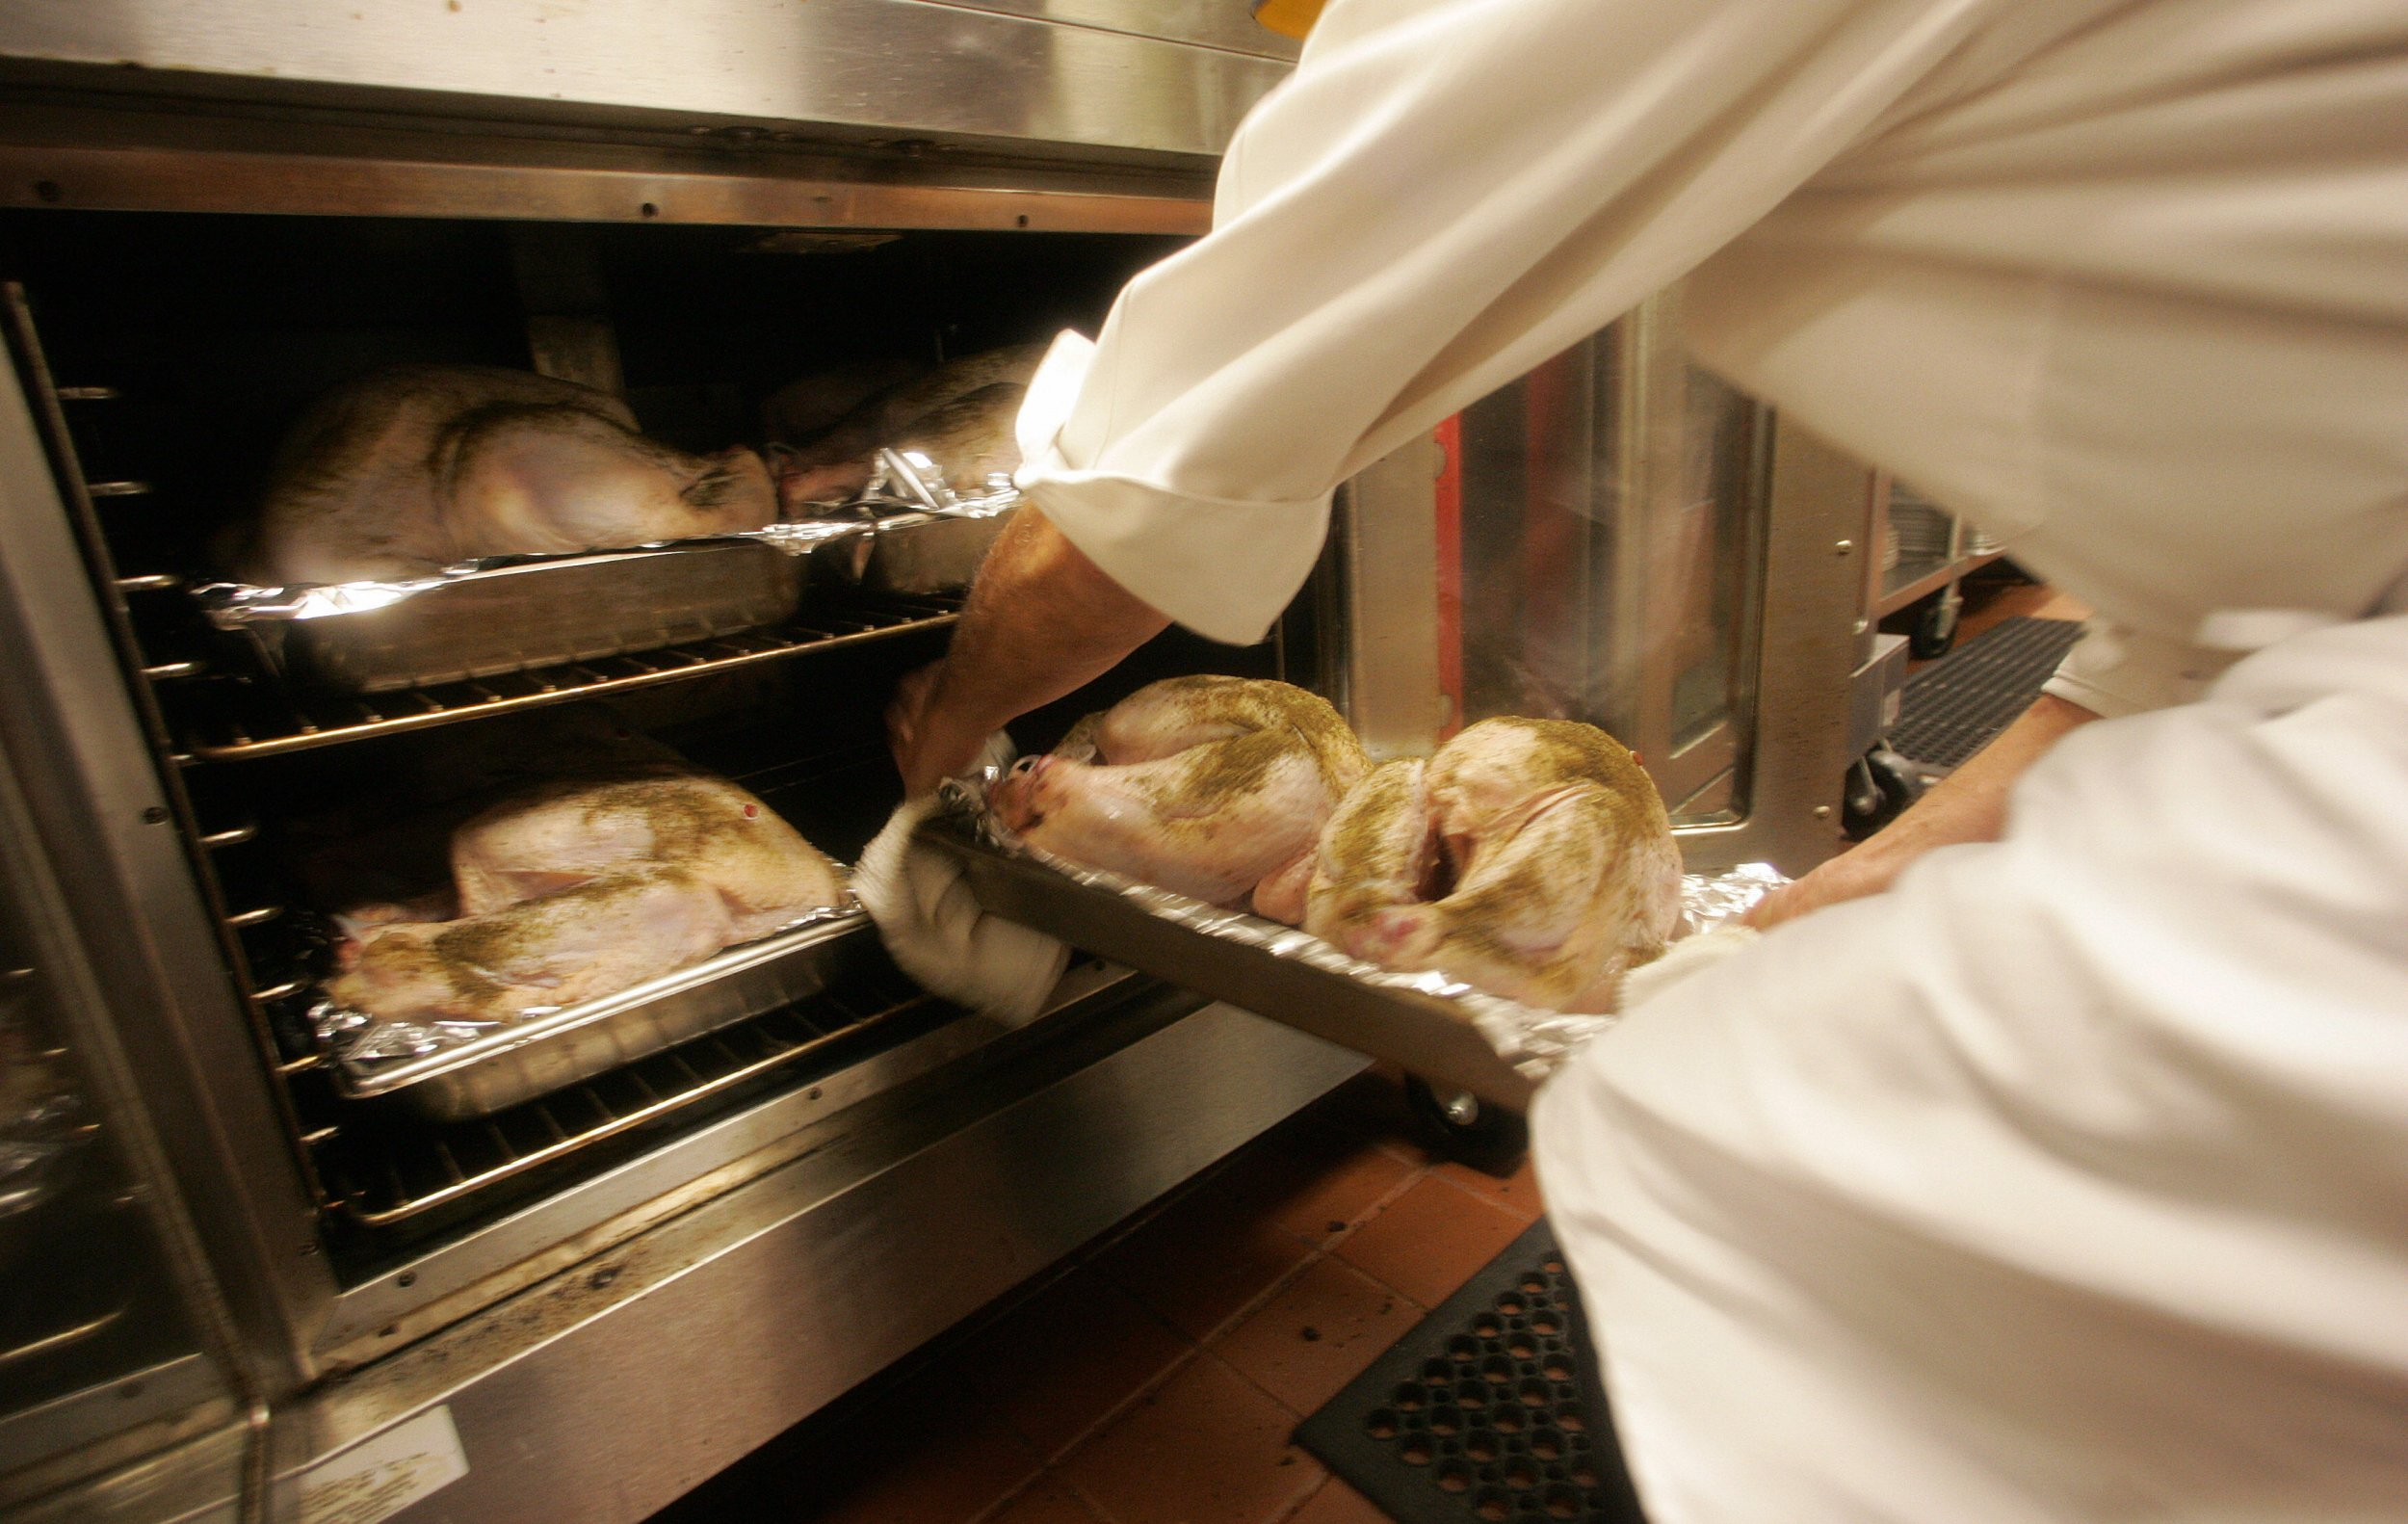 how long should you cook a turkey